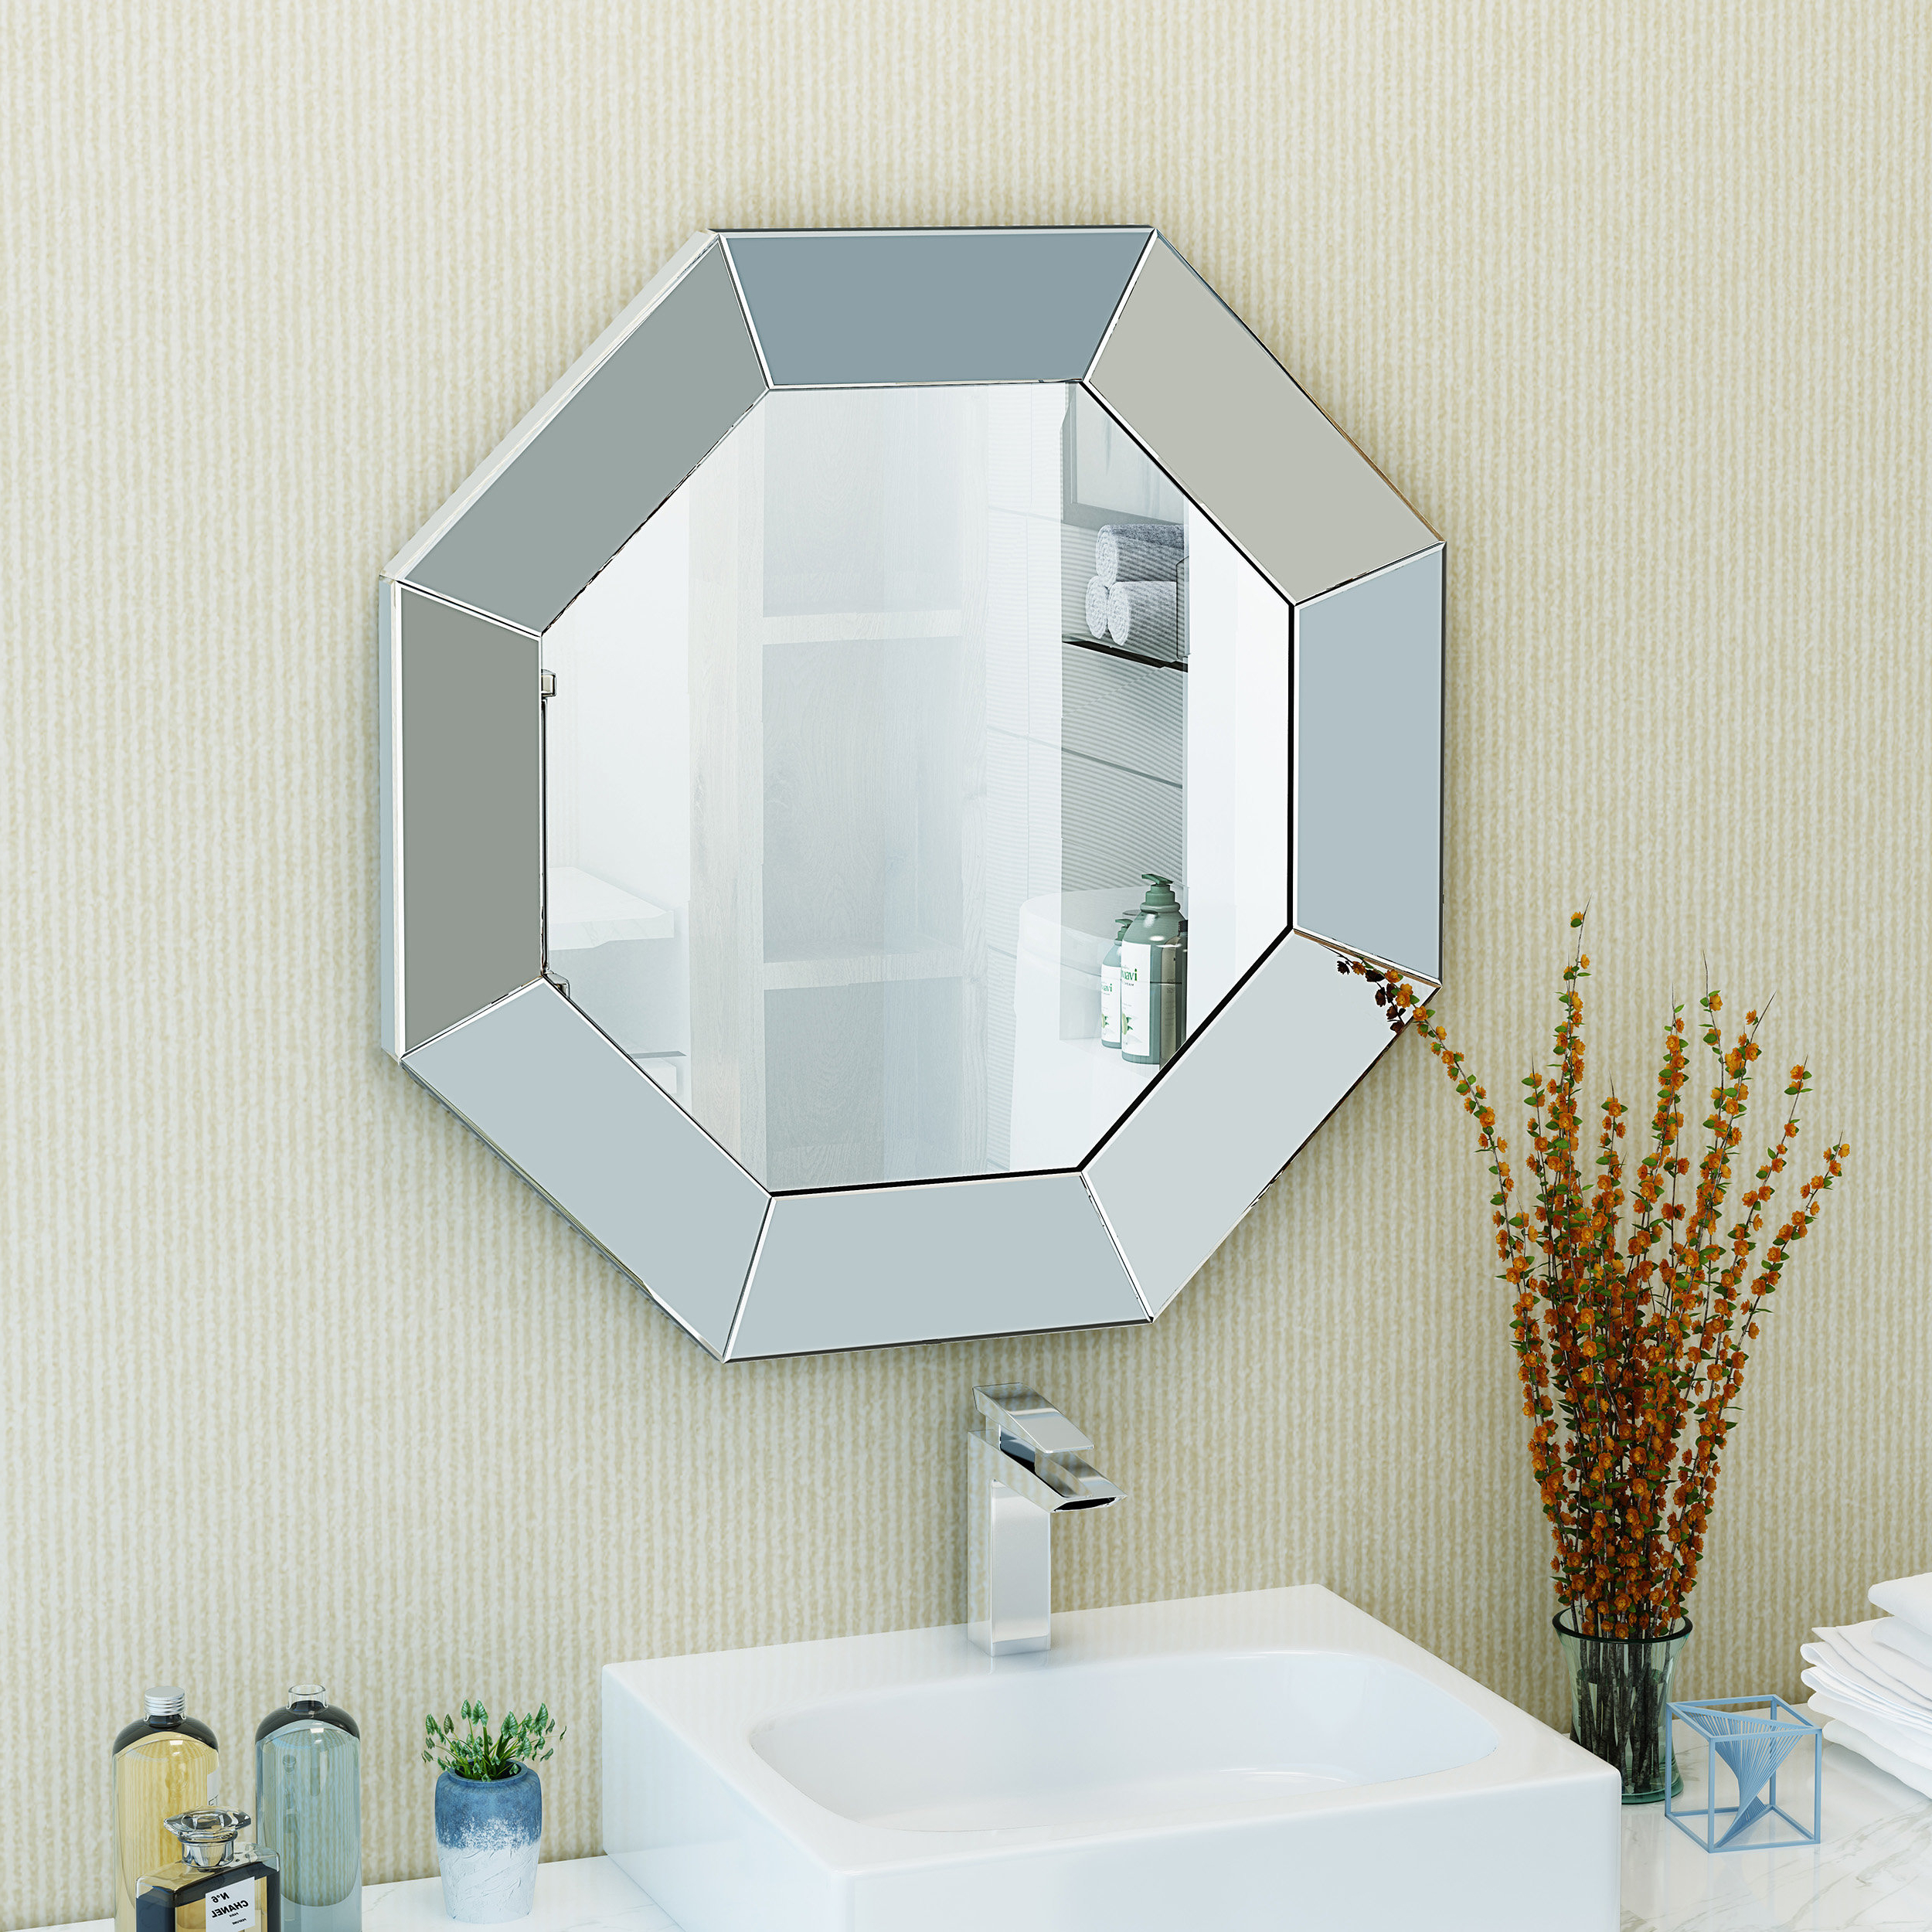 Samantha Octagonal Modern & Contemporary Accent Mirror Throughout Recent Trigg Accent Mirrors (View 18 of 20)